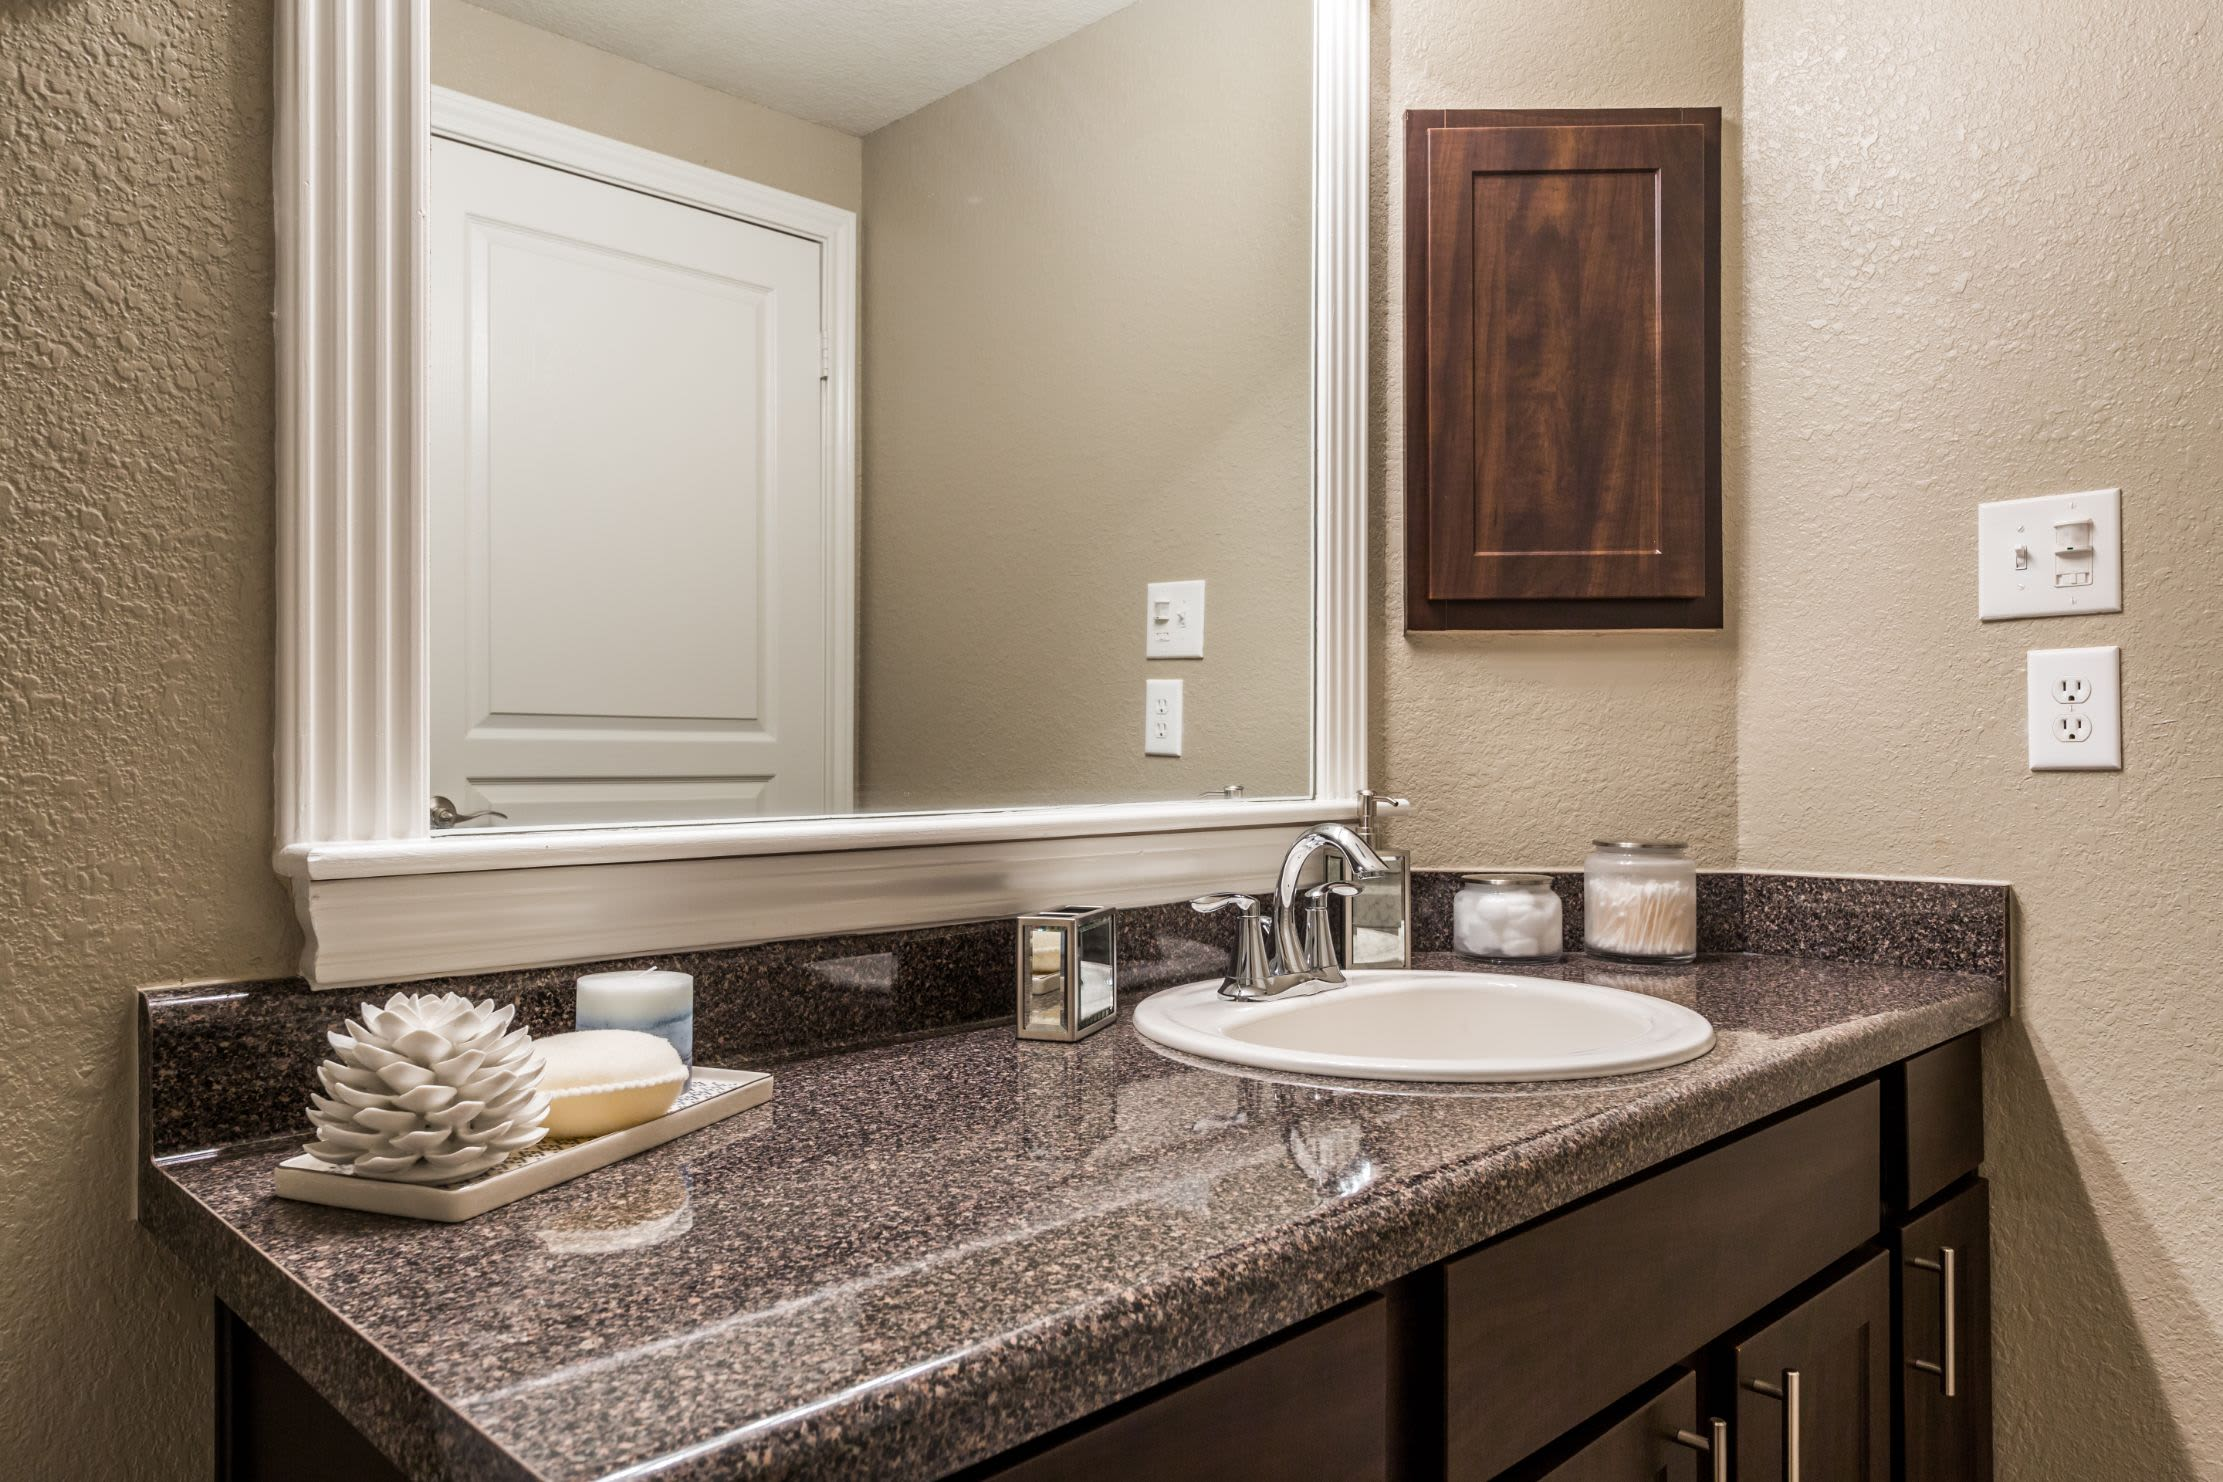 Bathroom with large mirror at Marquis at Deerfield in San Antonio, Texas